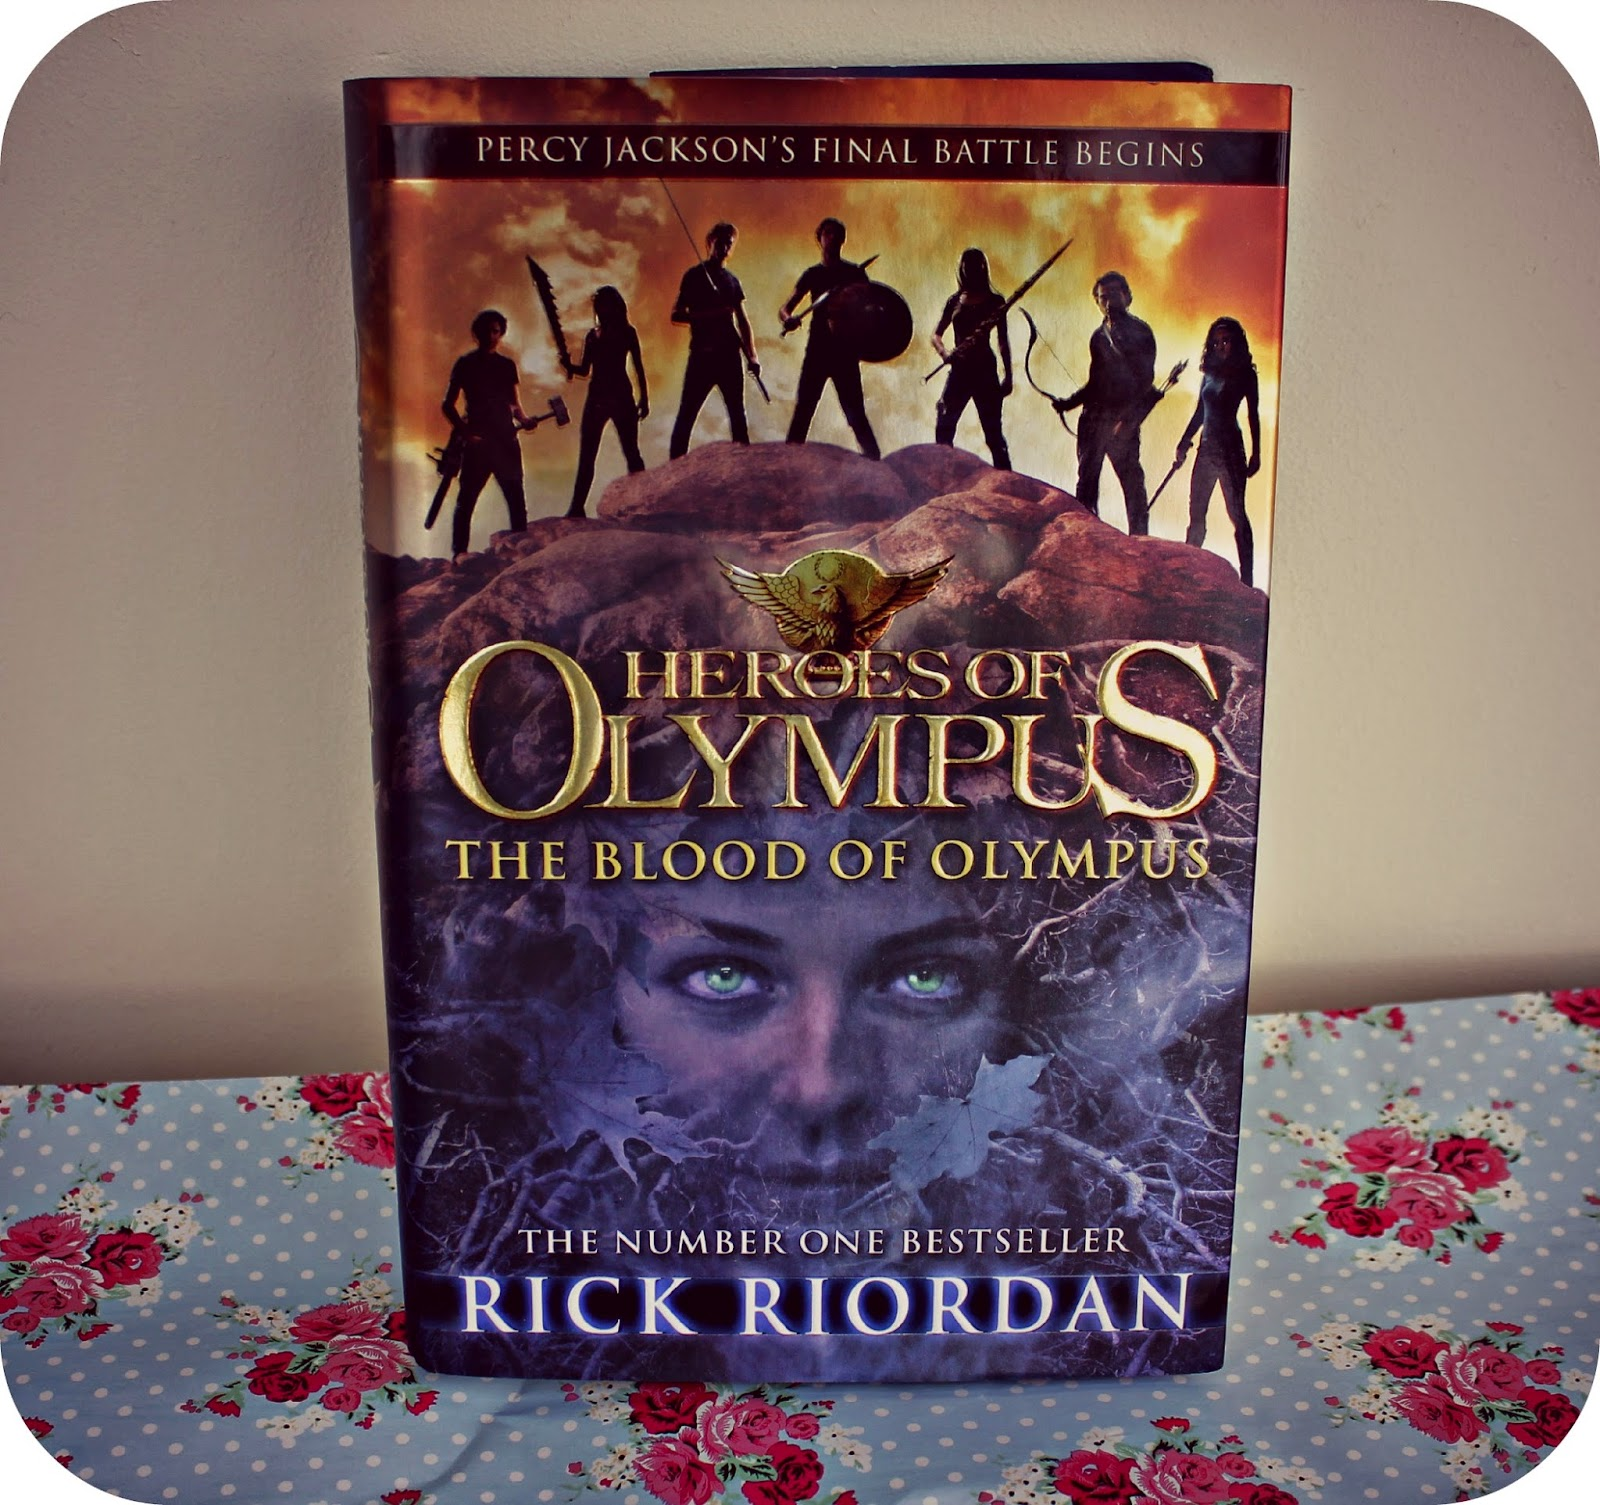 The Heroes of Olympus: The Blood of Olympus Book Giveaway!